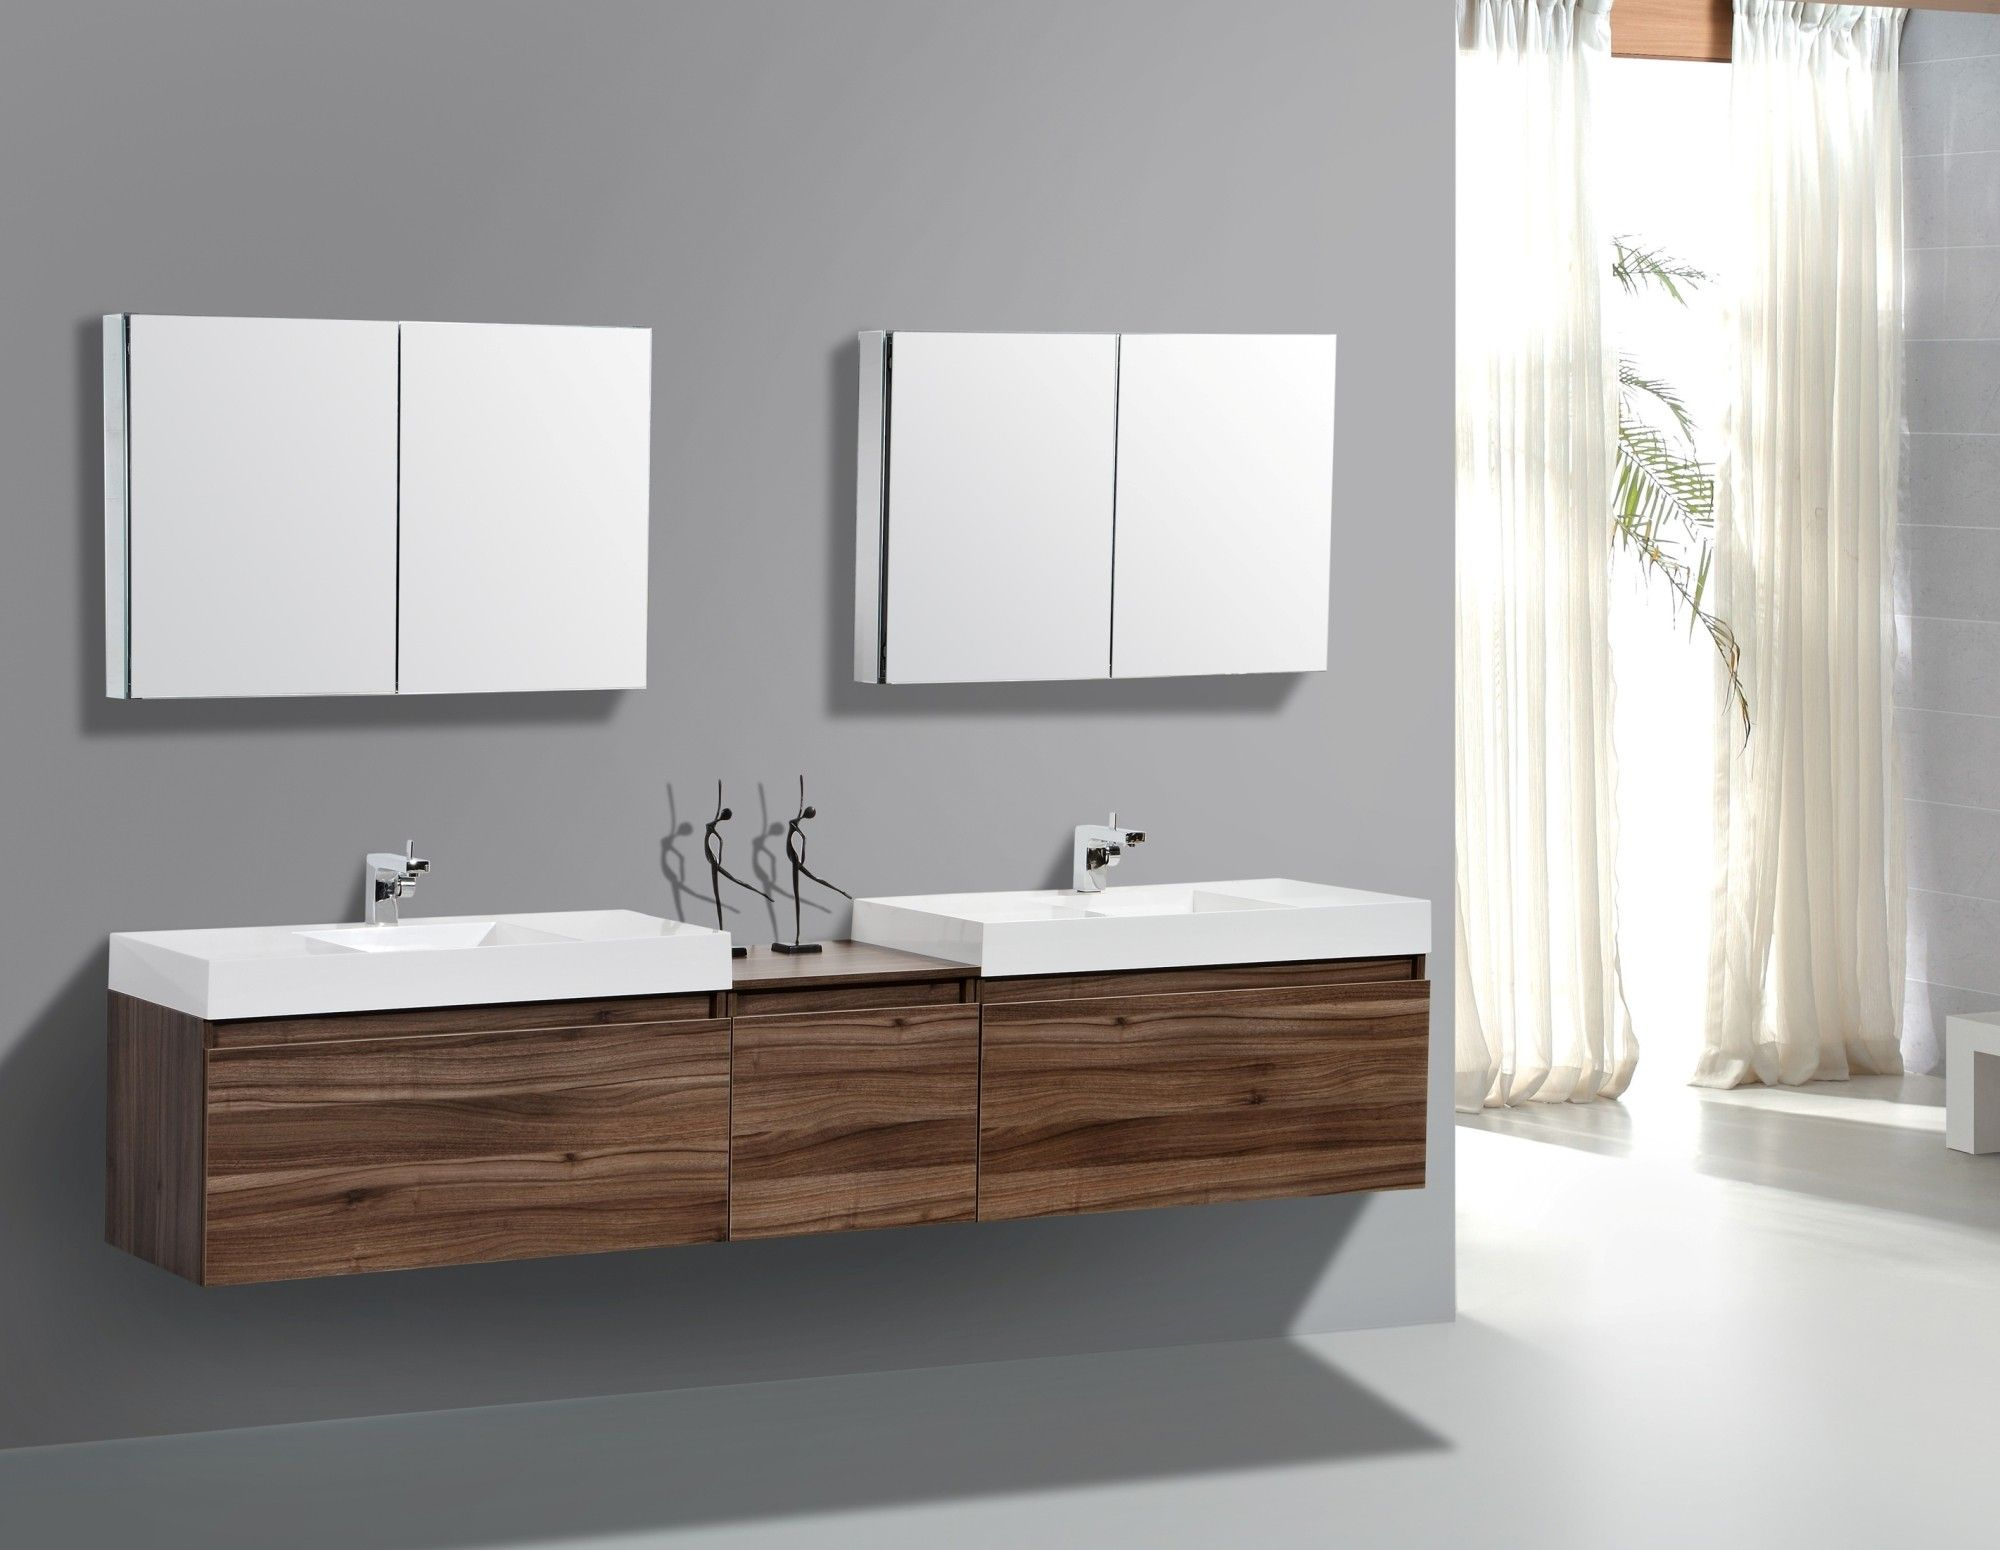 top  designs of modern bathroom vanities  modern bathroom  - even though floating modern bathroom vanities are made very simple in itsstorage you still